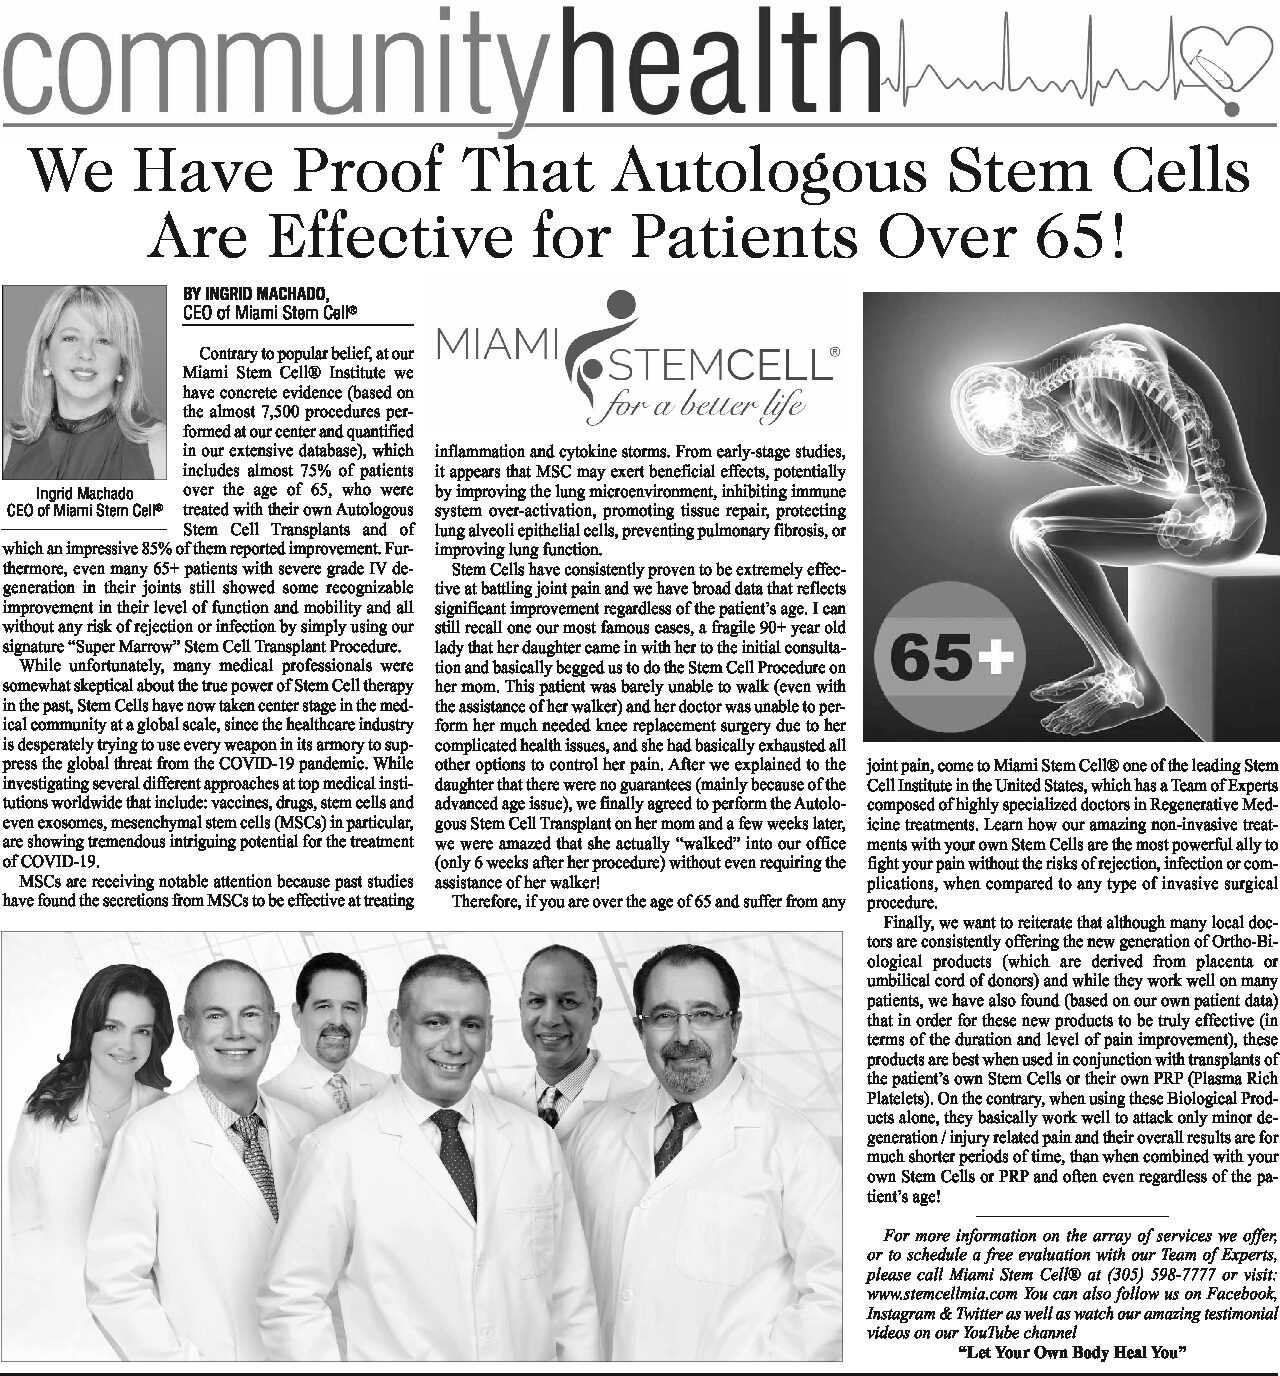 We Have Proof That Autologous Stem Cells Are Effective for Patients Over 65!